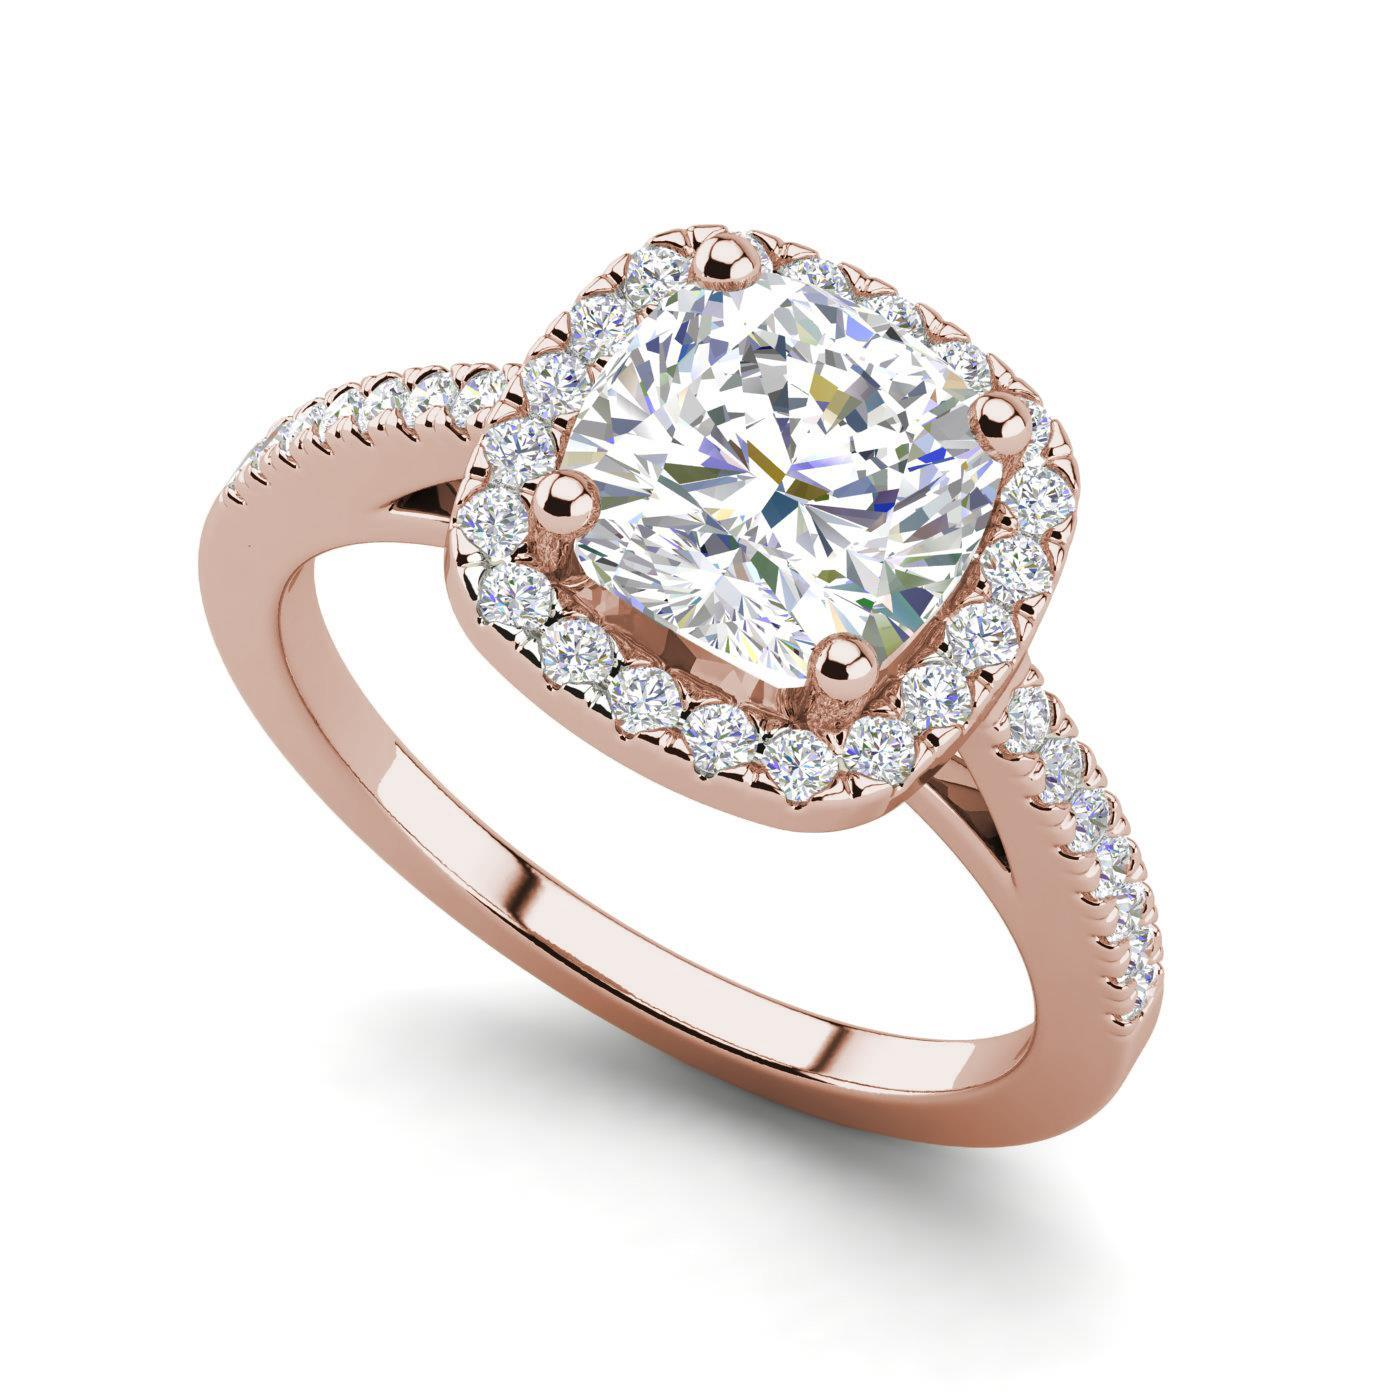 Details About Halo 1 95 Carat Si1 F Cushion Cut Diamond Engagement Ring Rose Gold